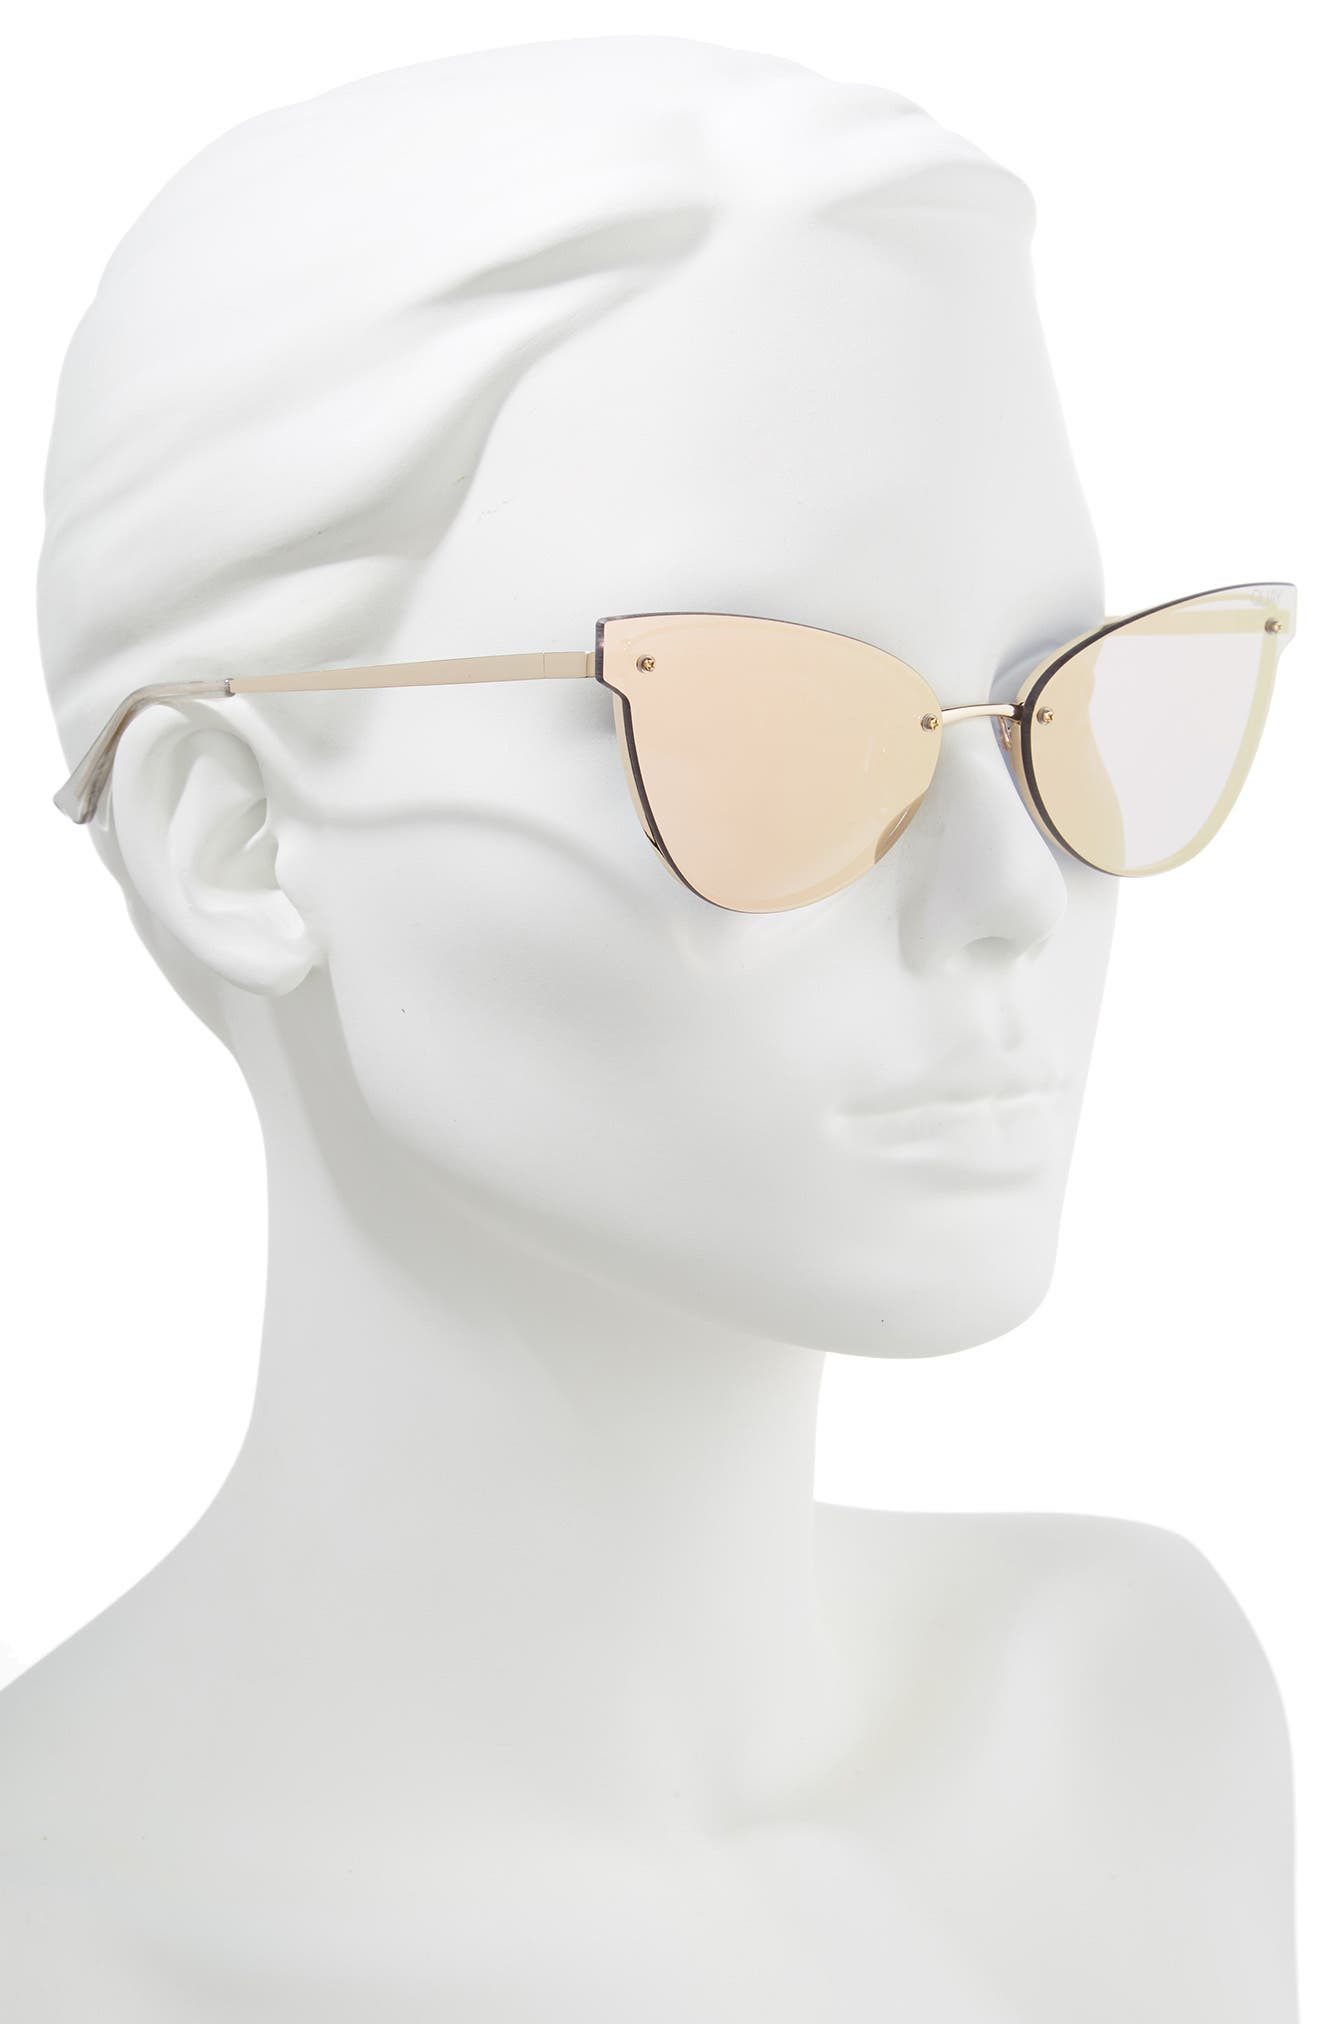 Lady Luck 60mm Cat Eye Sunglasses,                             Alternate thumbnail 3, color,                             Gold/ Gold